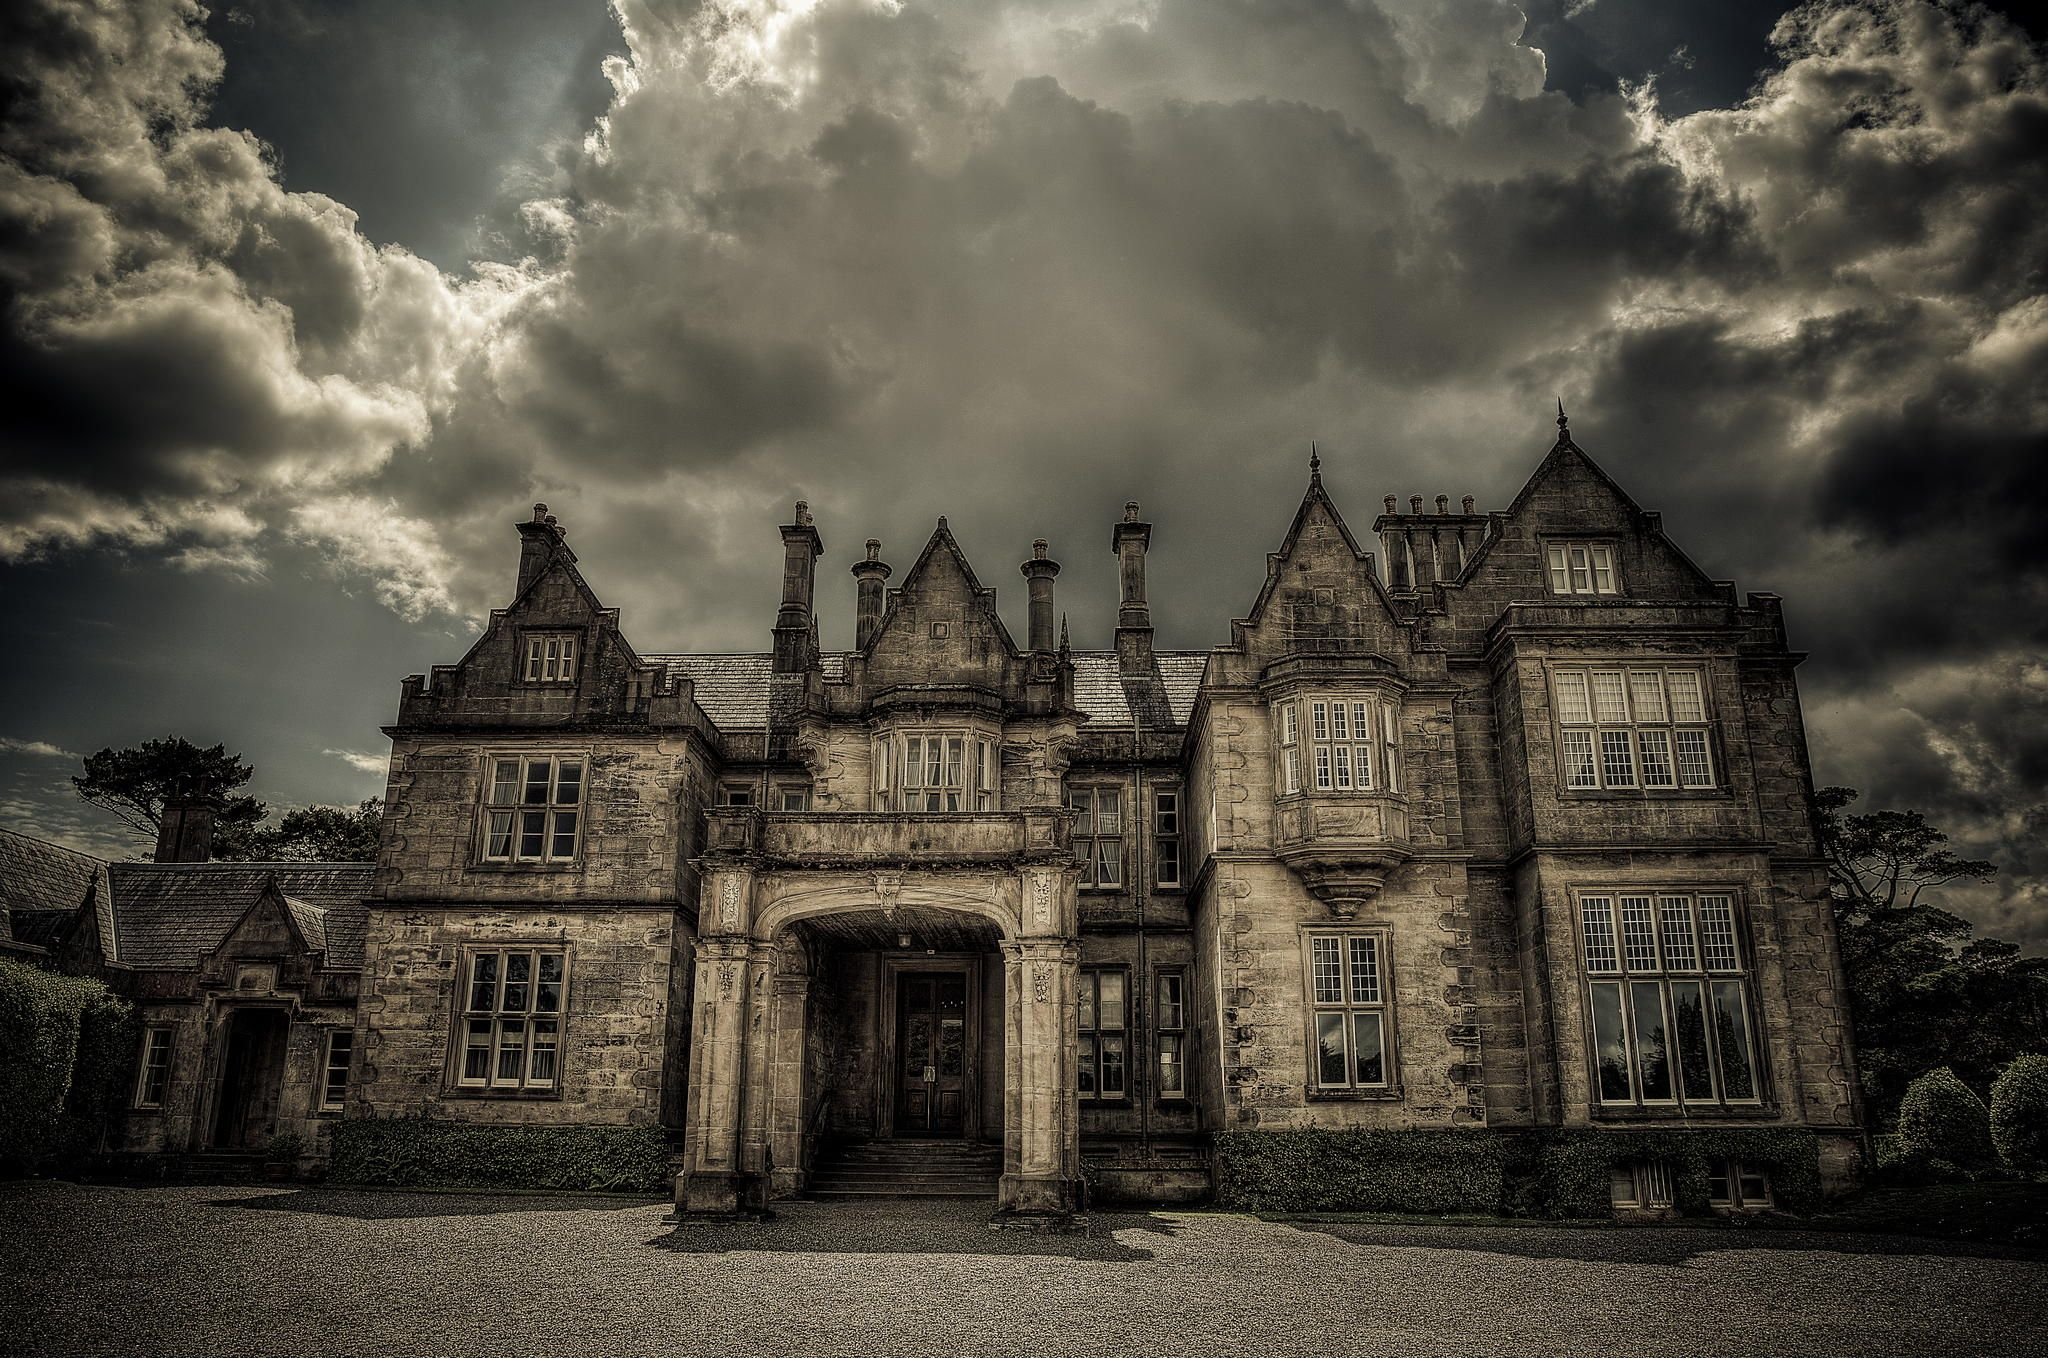 Muckross House by Seth Cribby on 500px